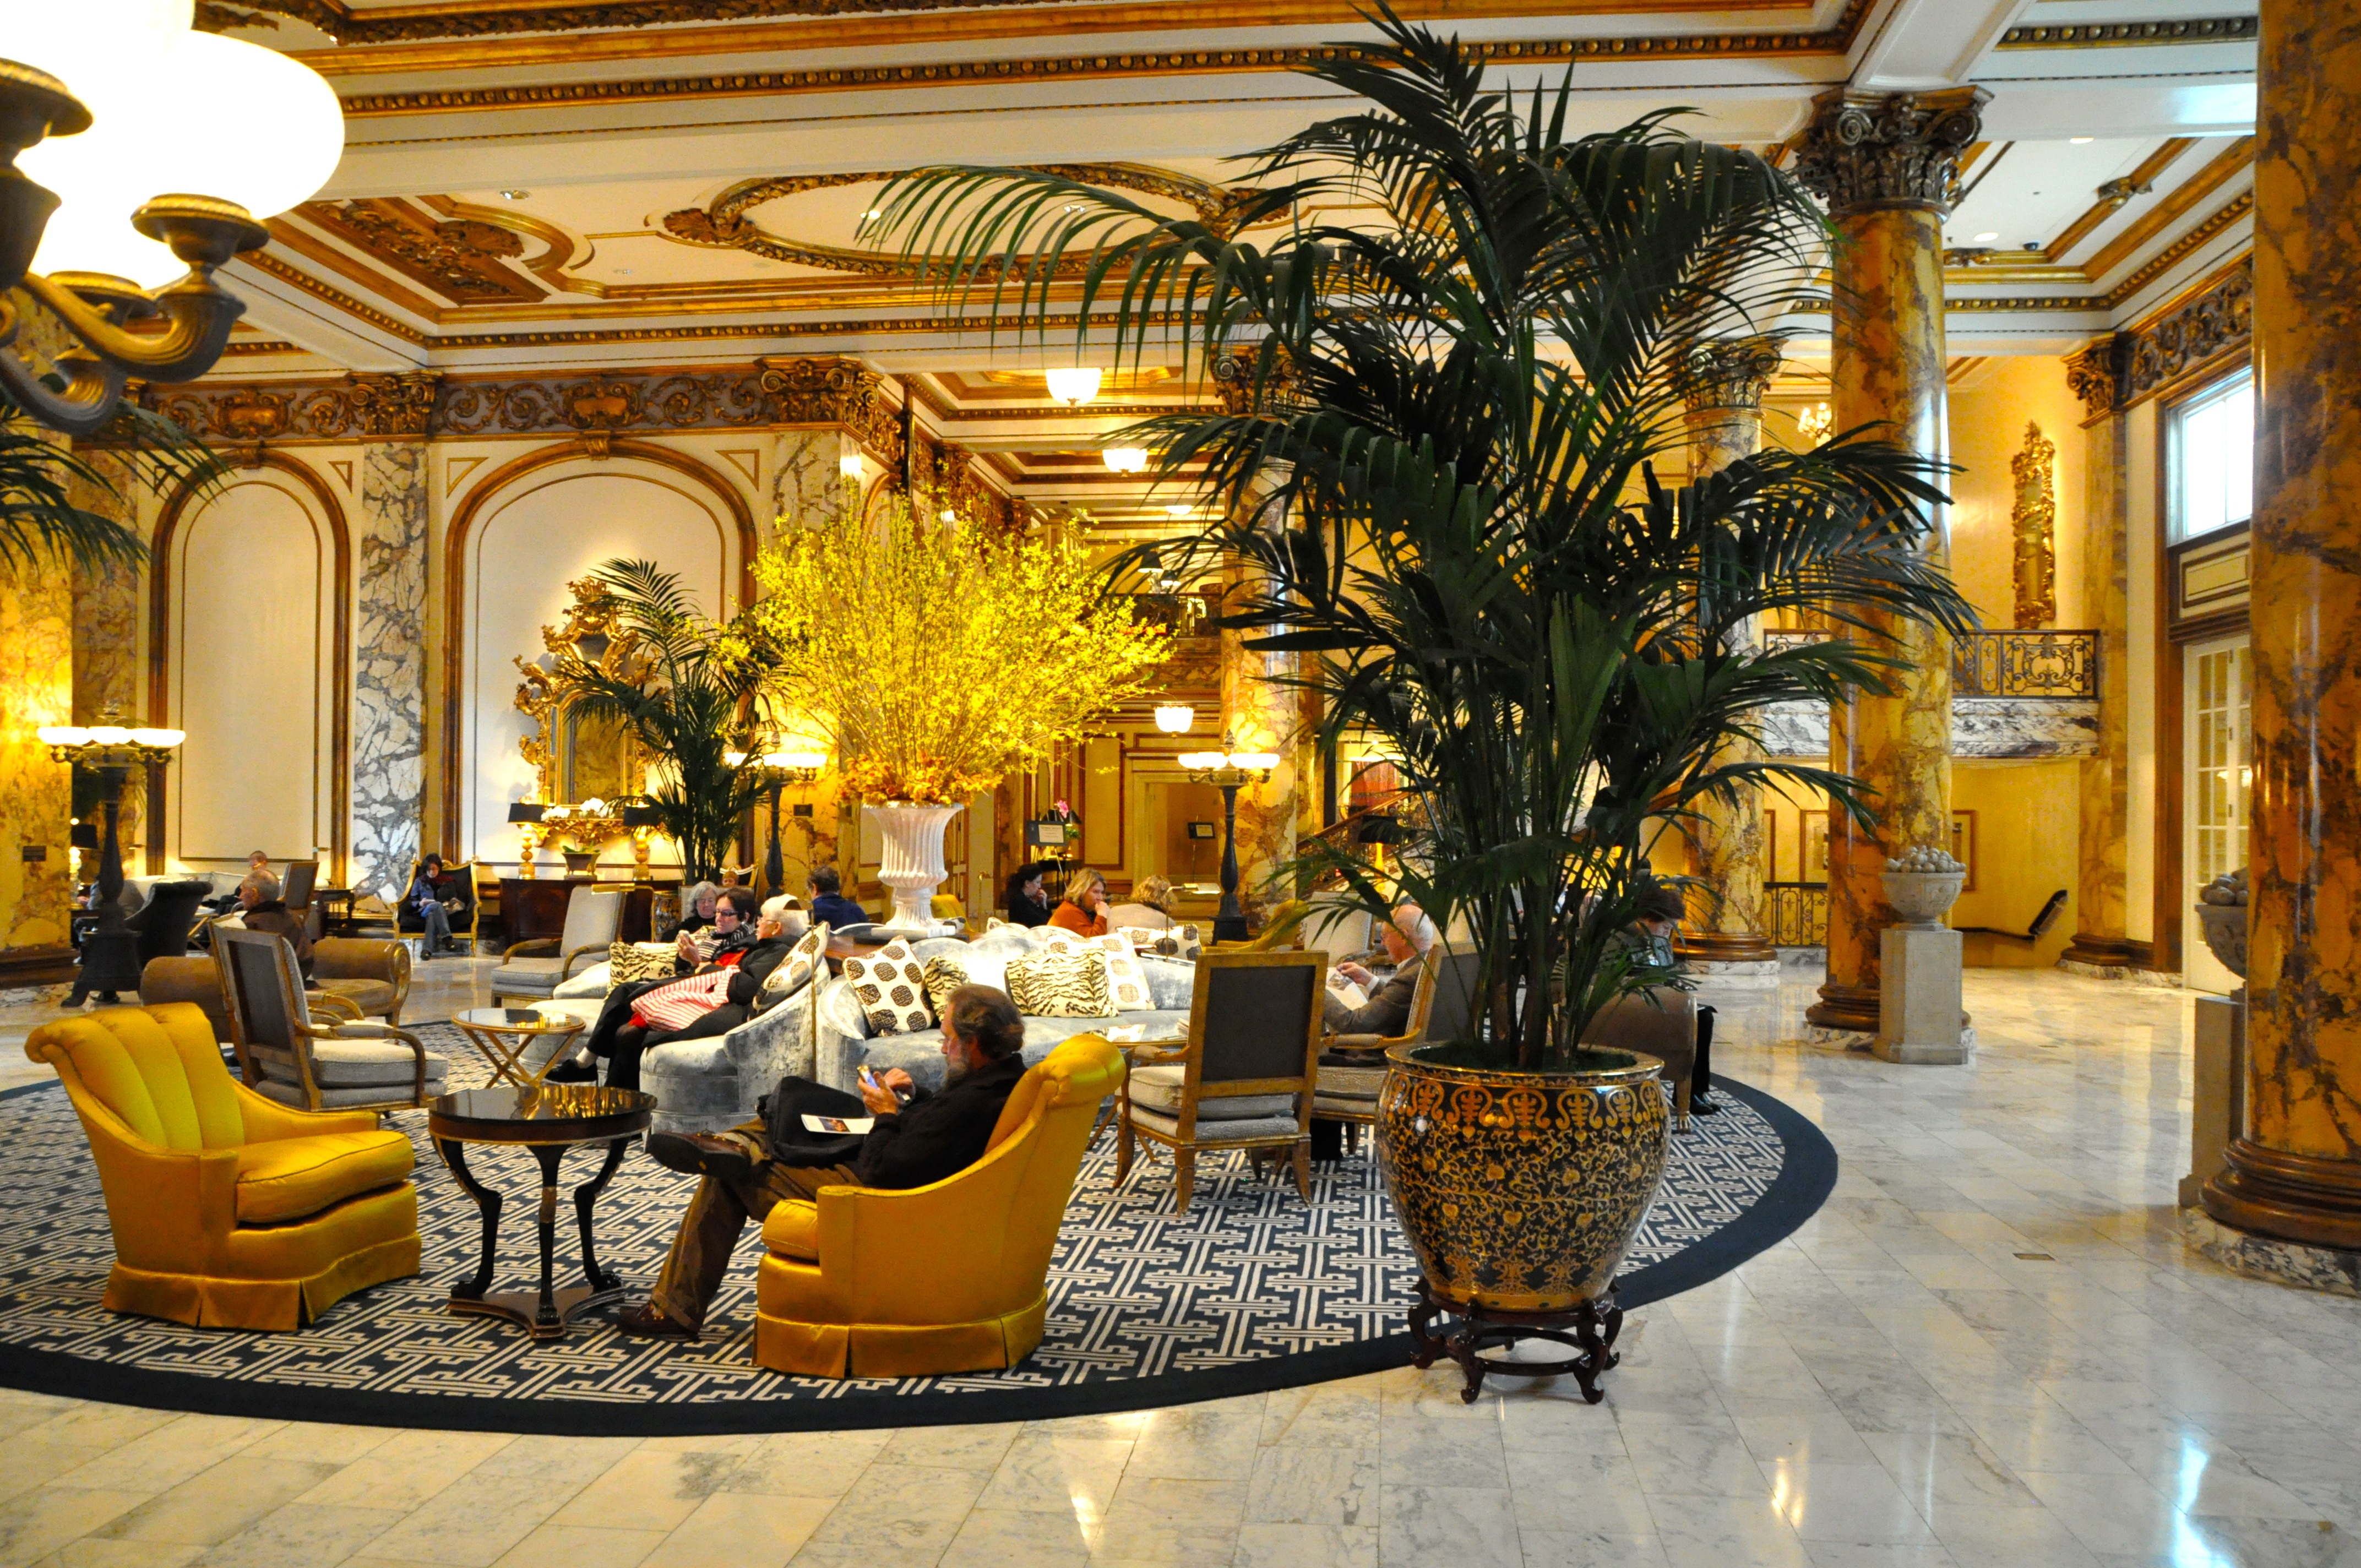 Lobby of the Fairmont in San Francisco